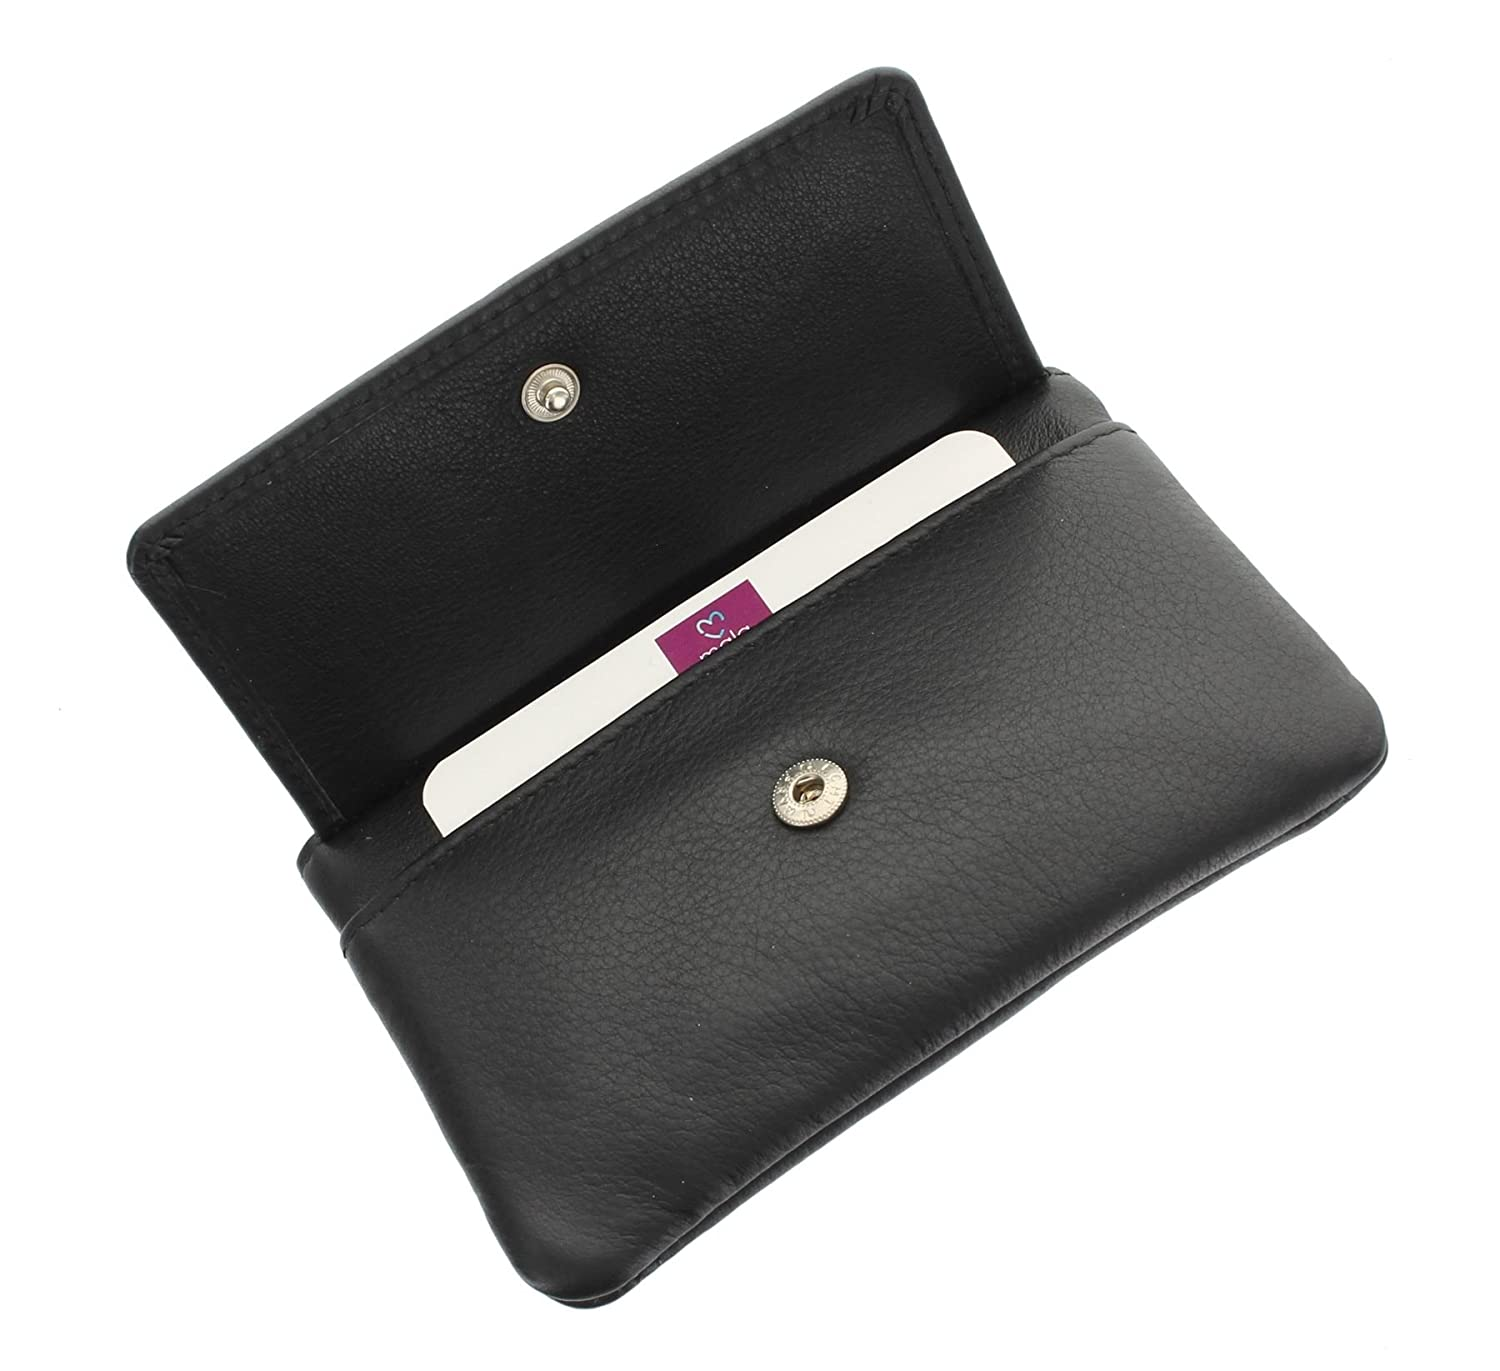 RED PURPLE! Mala Leather ORIGIN RFID coin purse PLUM real soft leather 4110 5